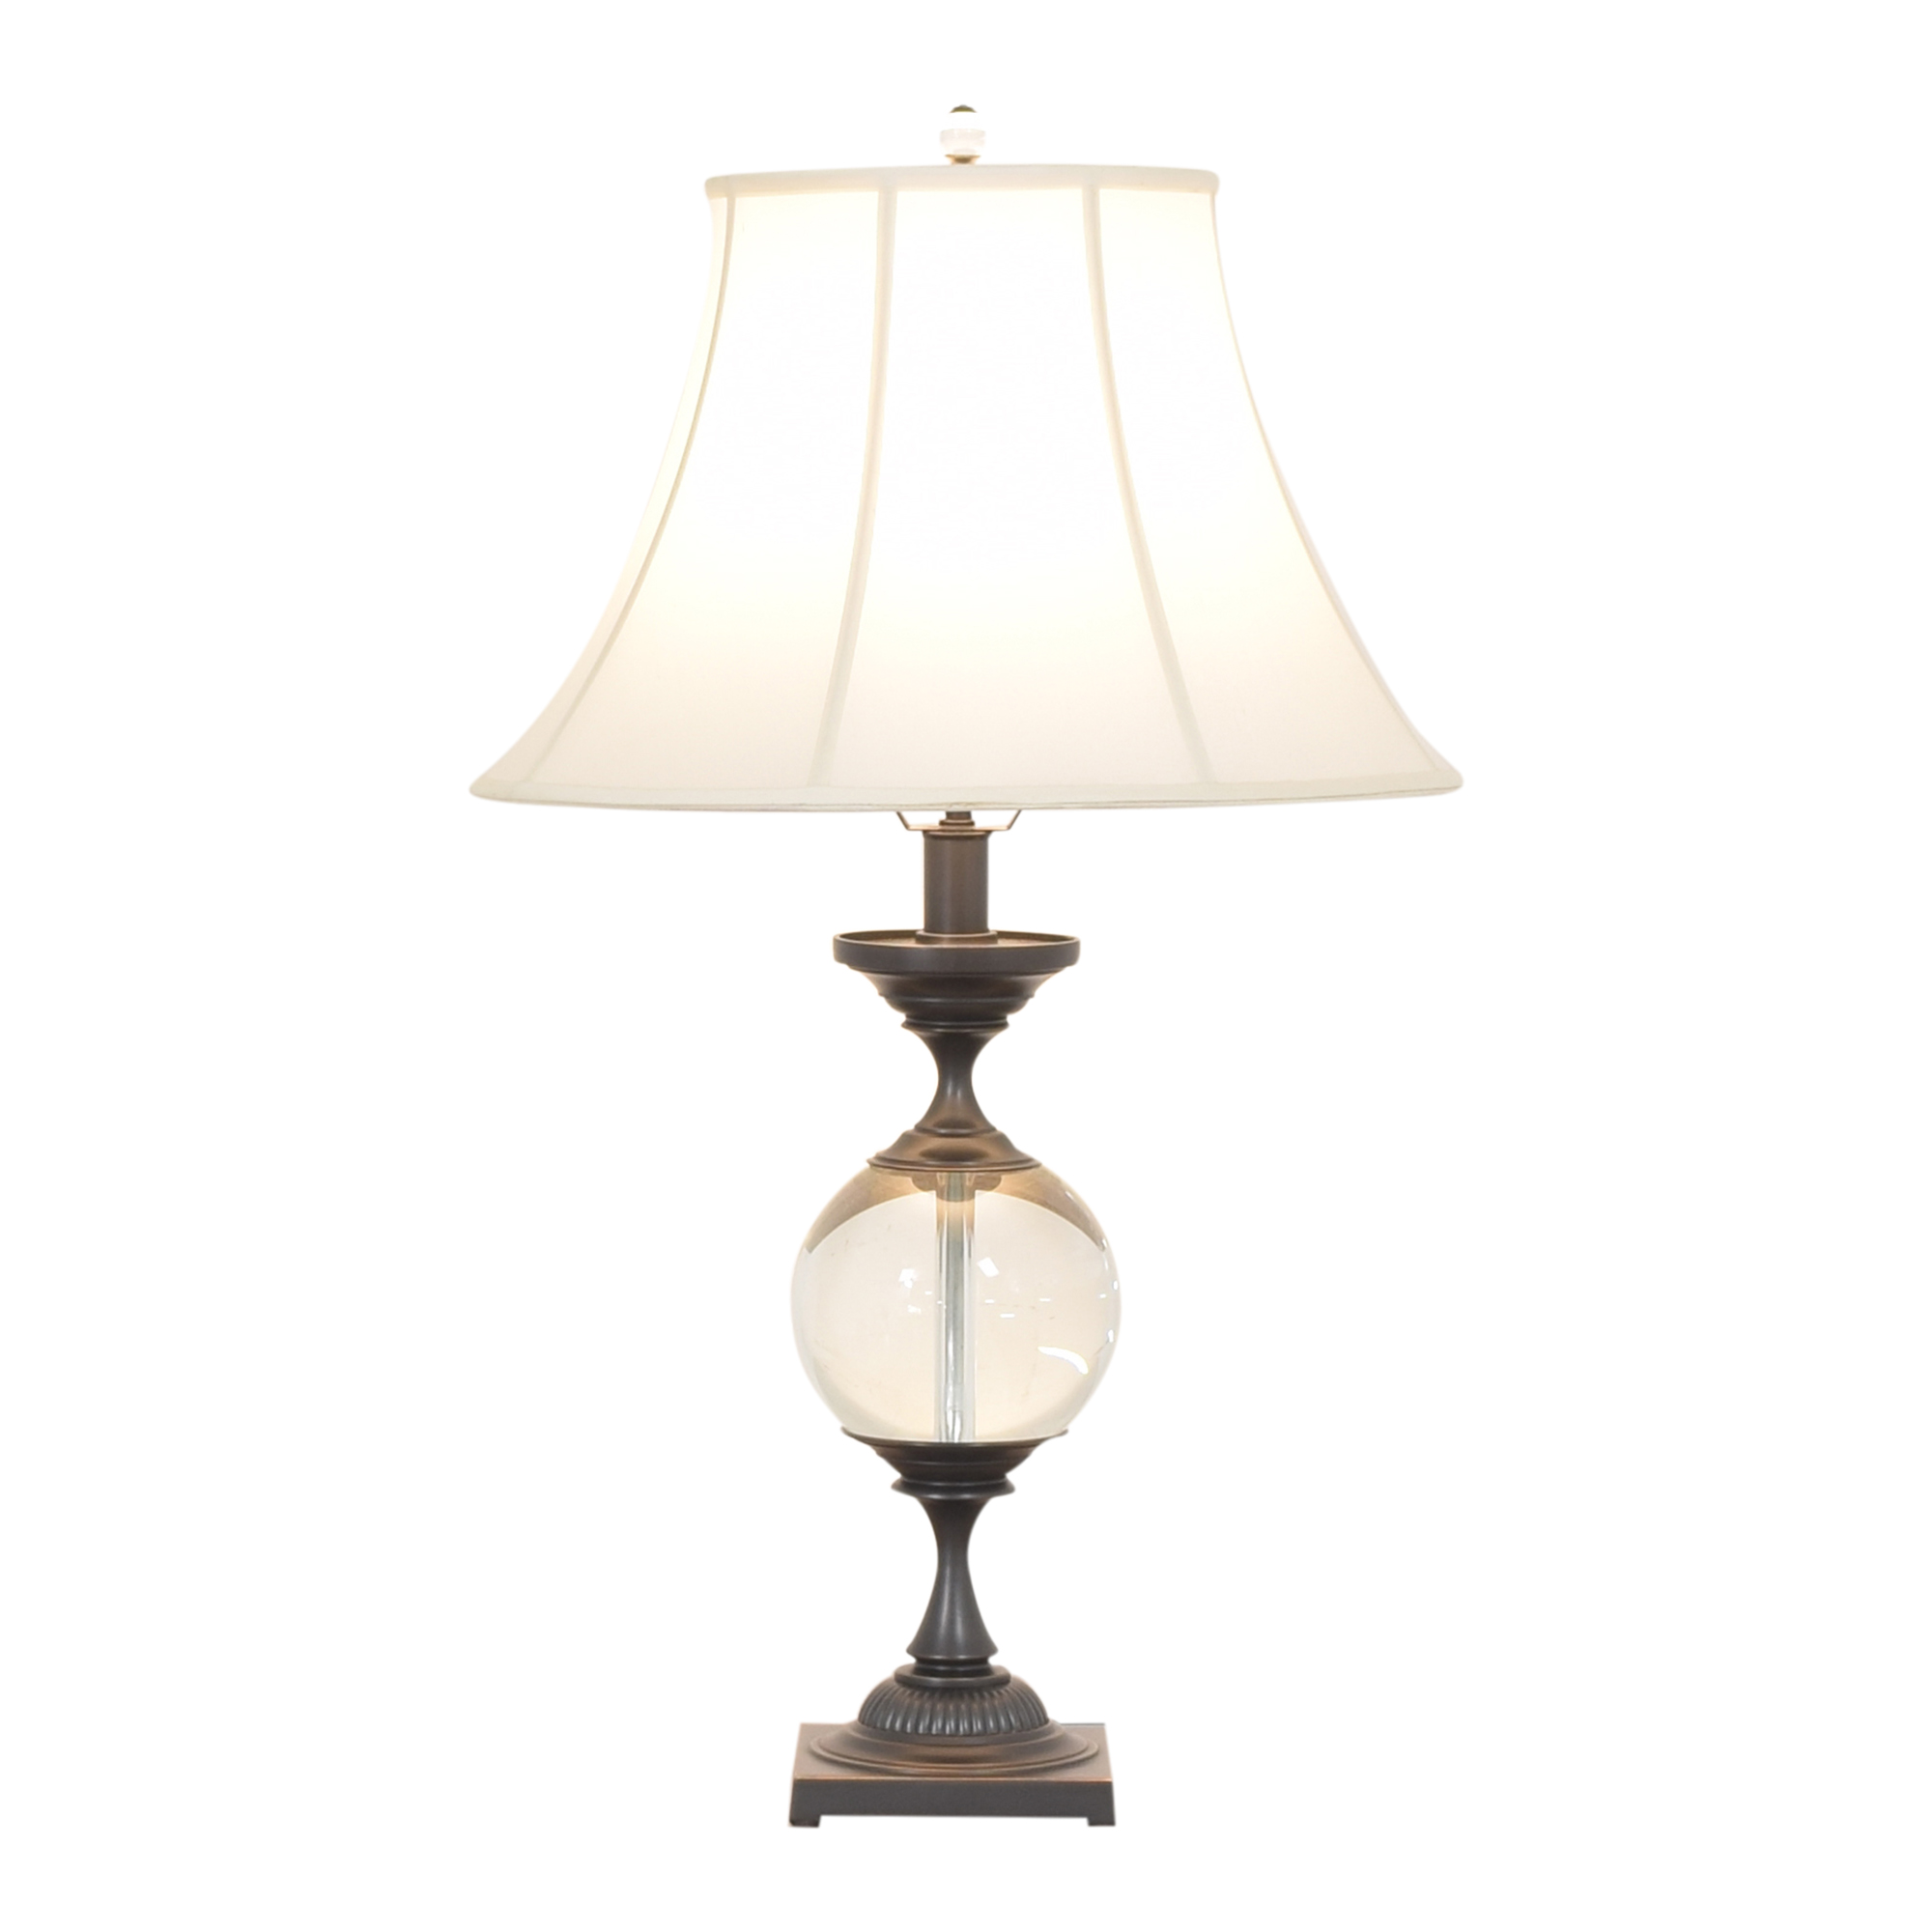 Restoration Hardware Restoration Hardware Crystal Ball Small Urn Table Lamp second hand